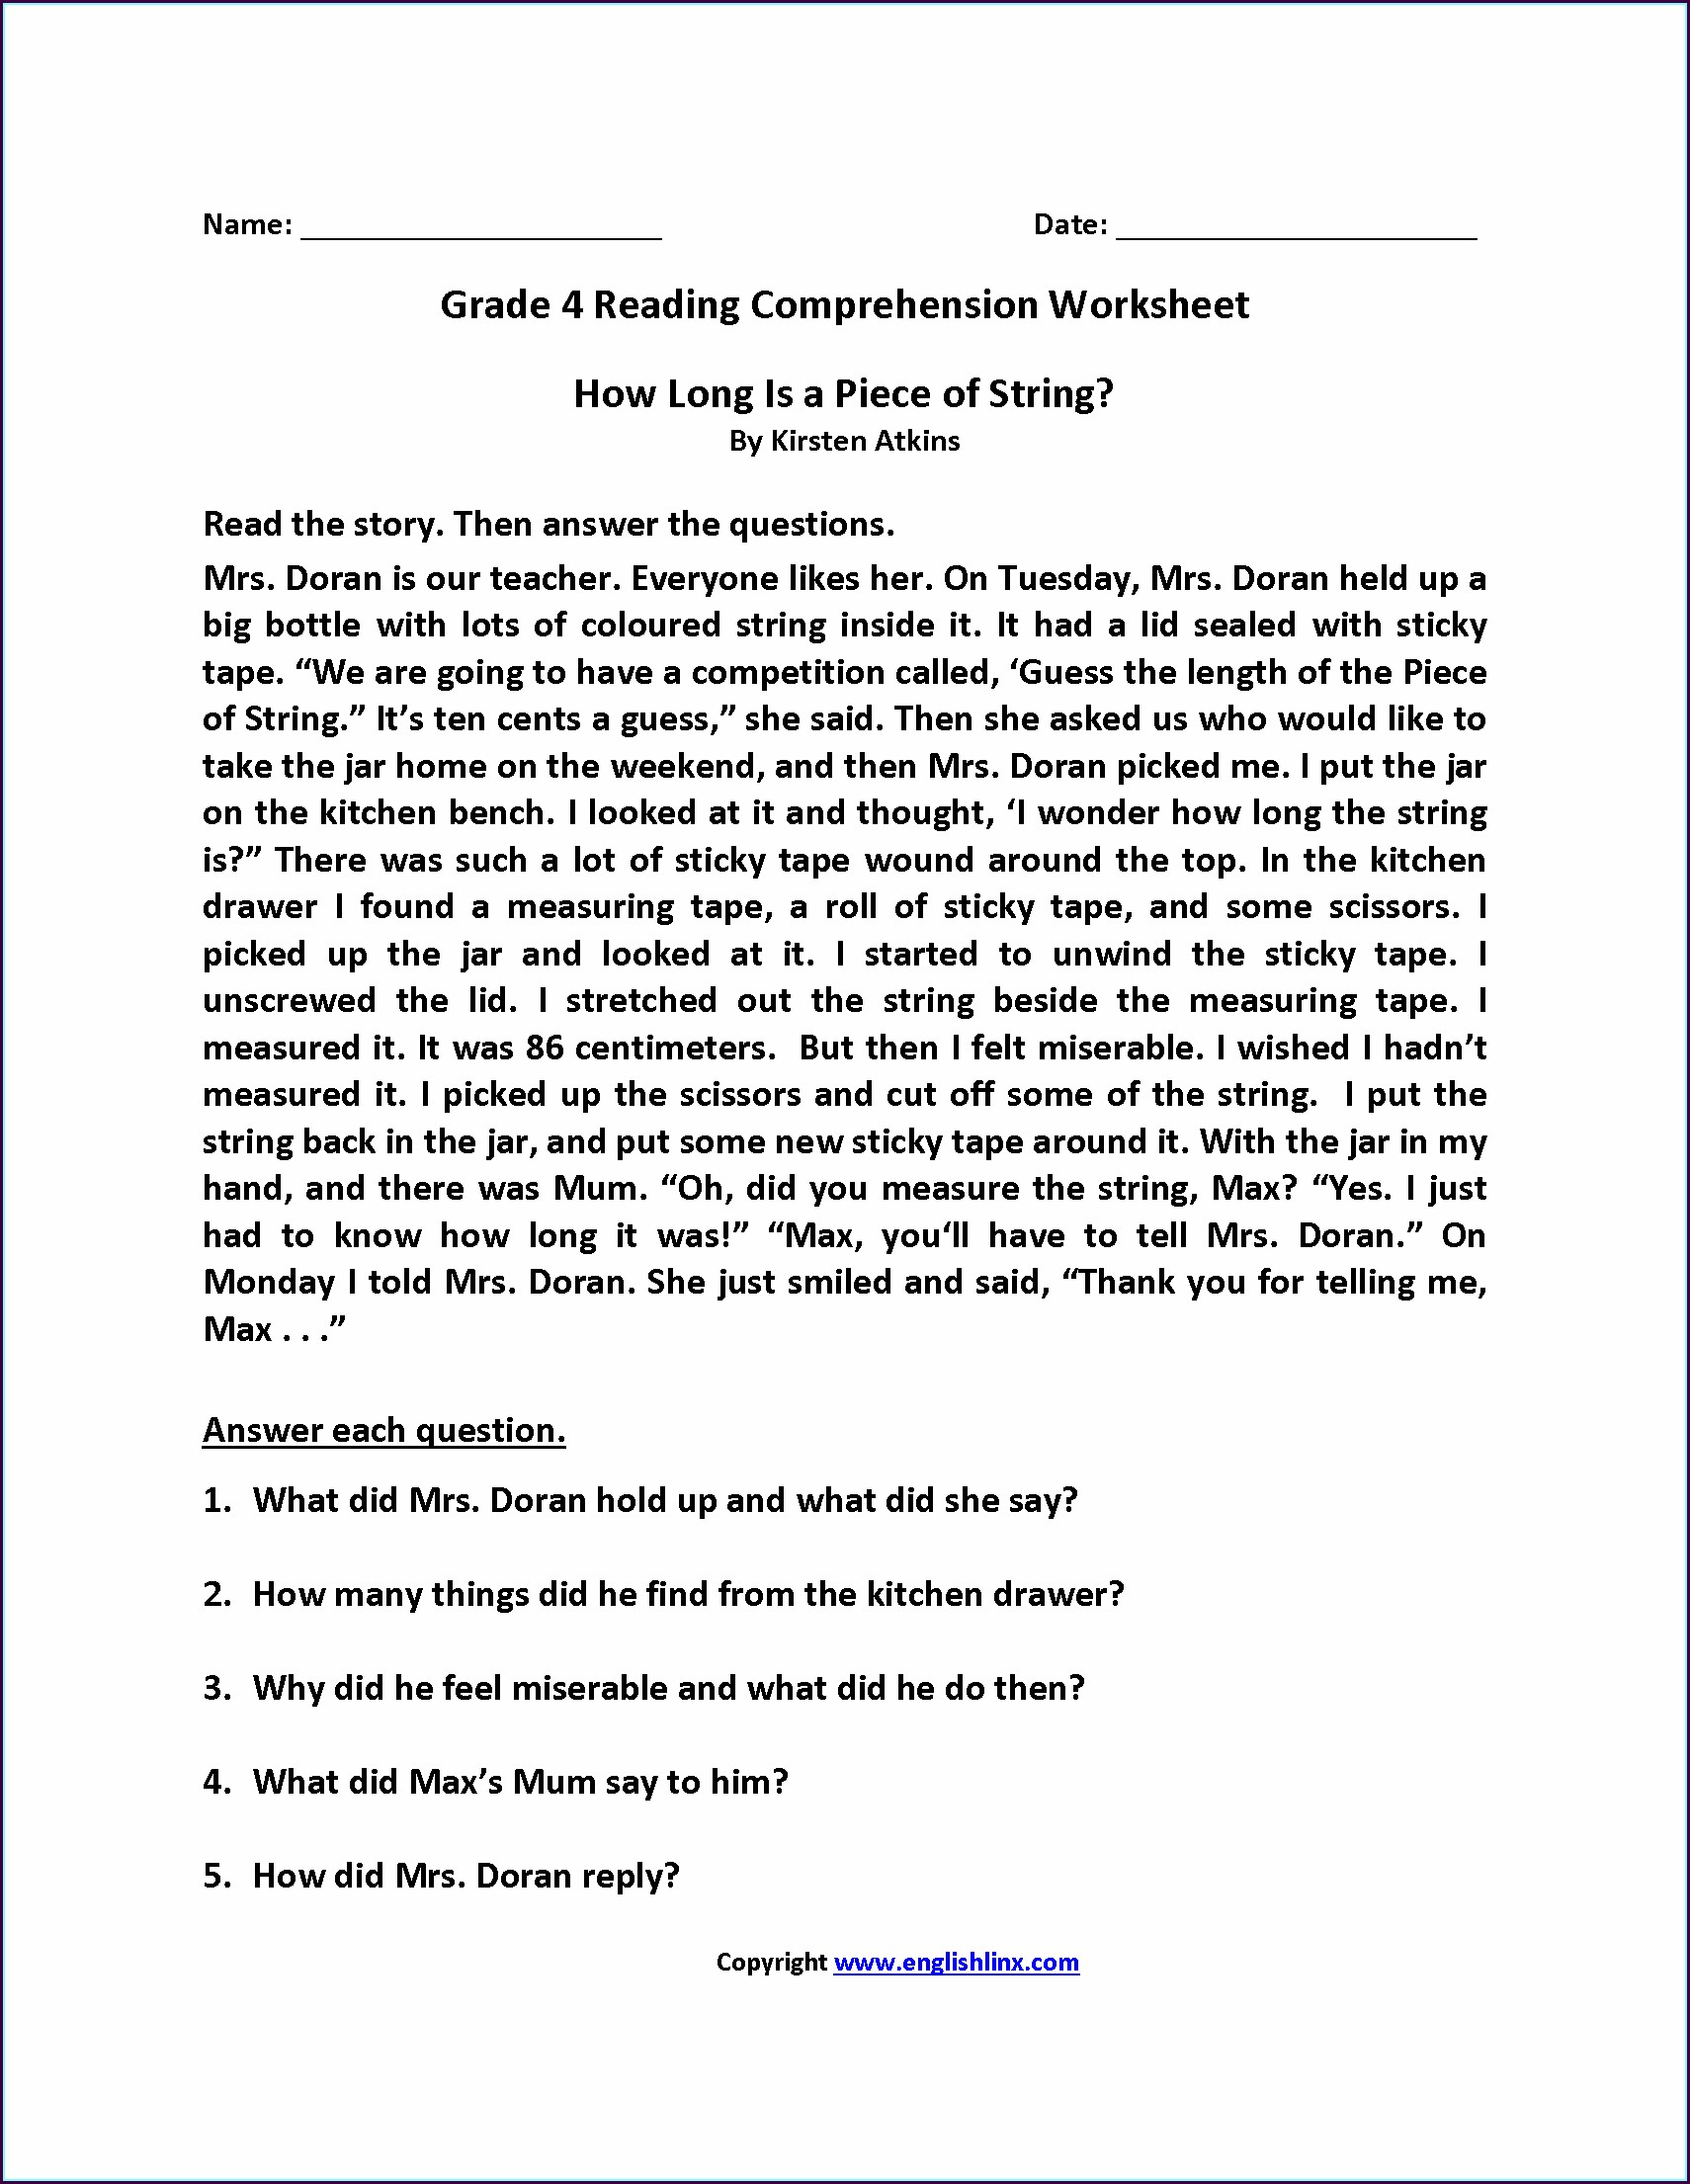 Worksheet For Grade 2 Filipino Pang Ukol Worksheet